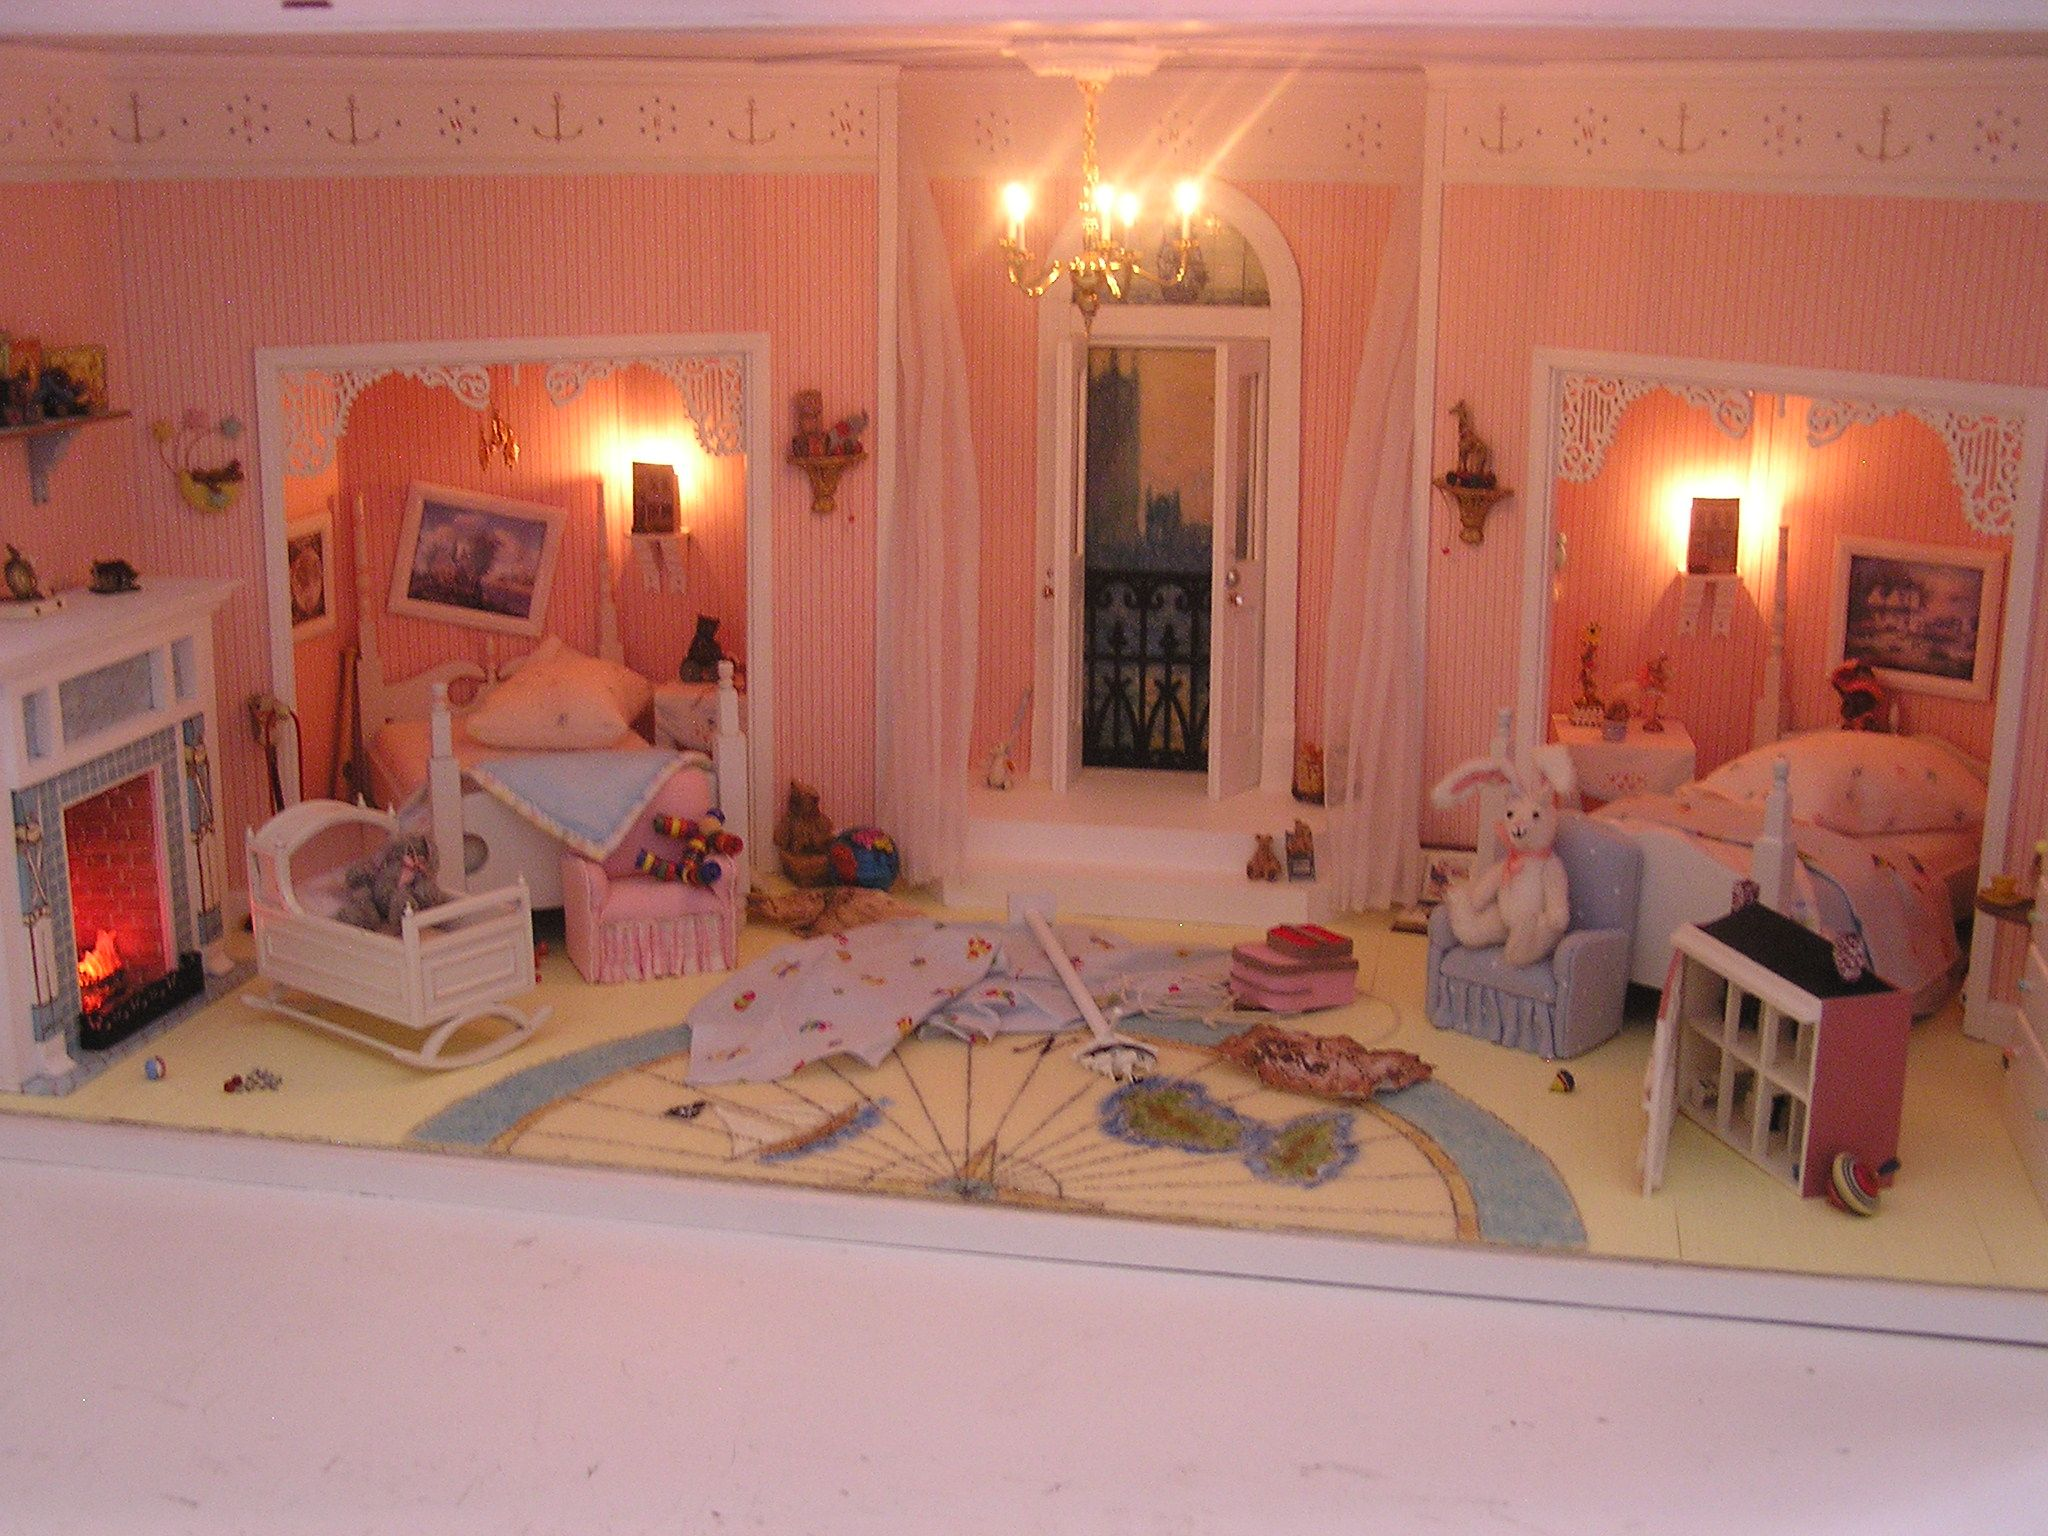 112 scale miniature roombox based on the childrens room from the movie hook - Robin Williams Bedroom